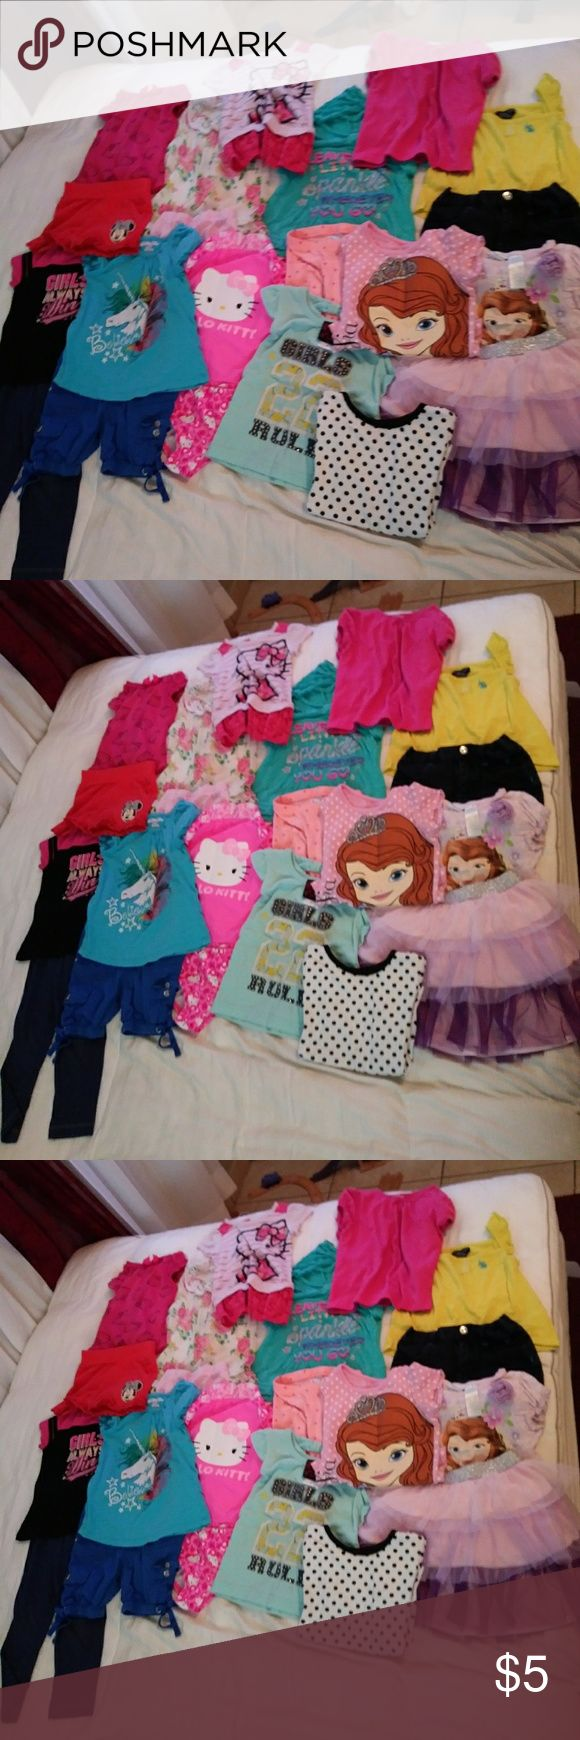 Toddler girls clothes Tops, leggings, skirt,  tankini bathing suit, shorts Buy in groups or individuals Sizes vary from 24 months to 5t Prices vary, ask the items I'll give a price Shirts & Tops